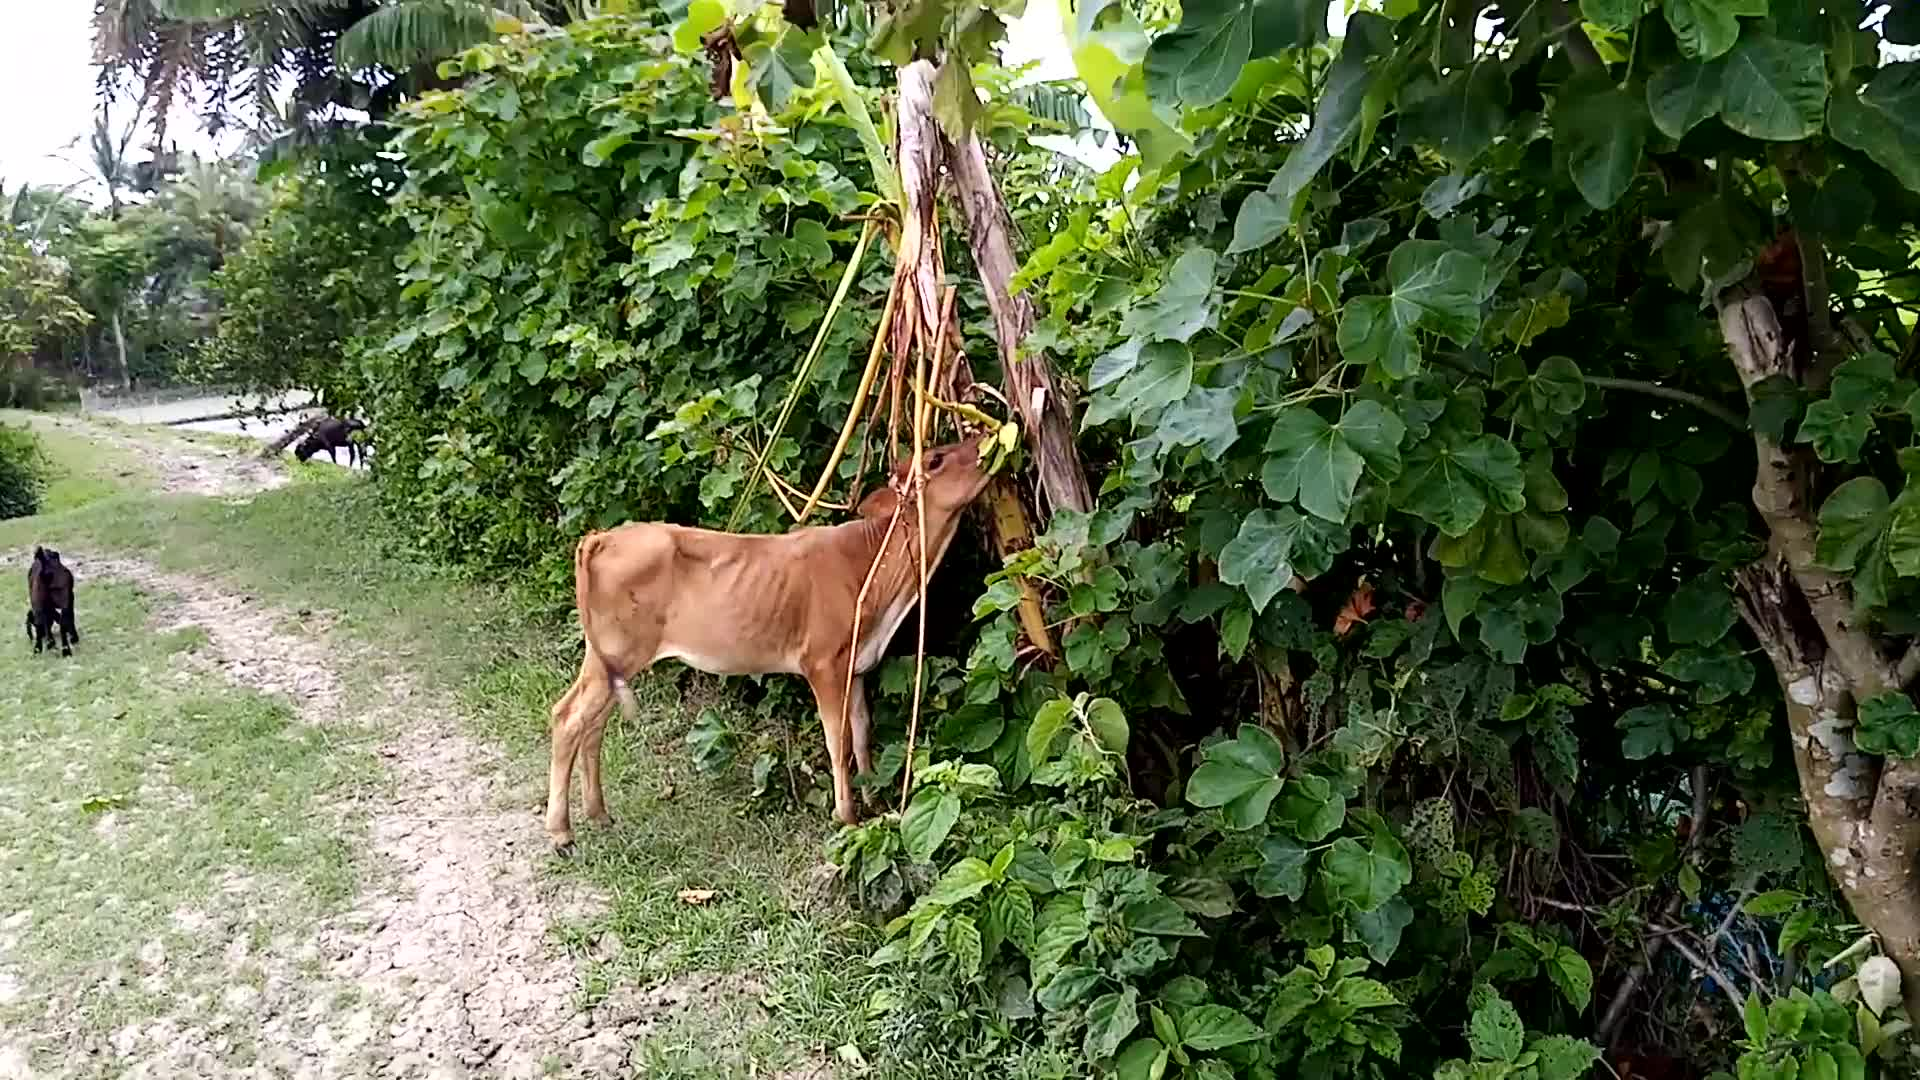 Our village is Satkhira, Dhulihar